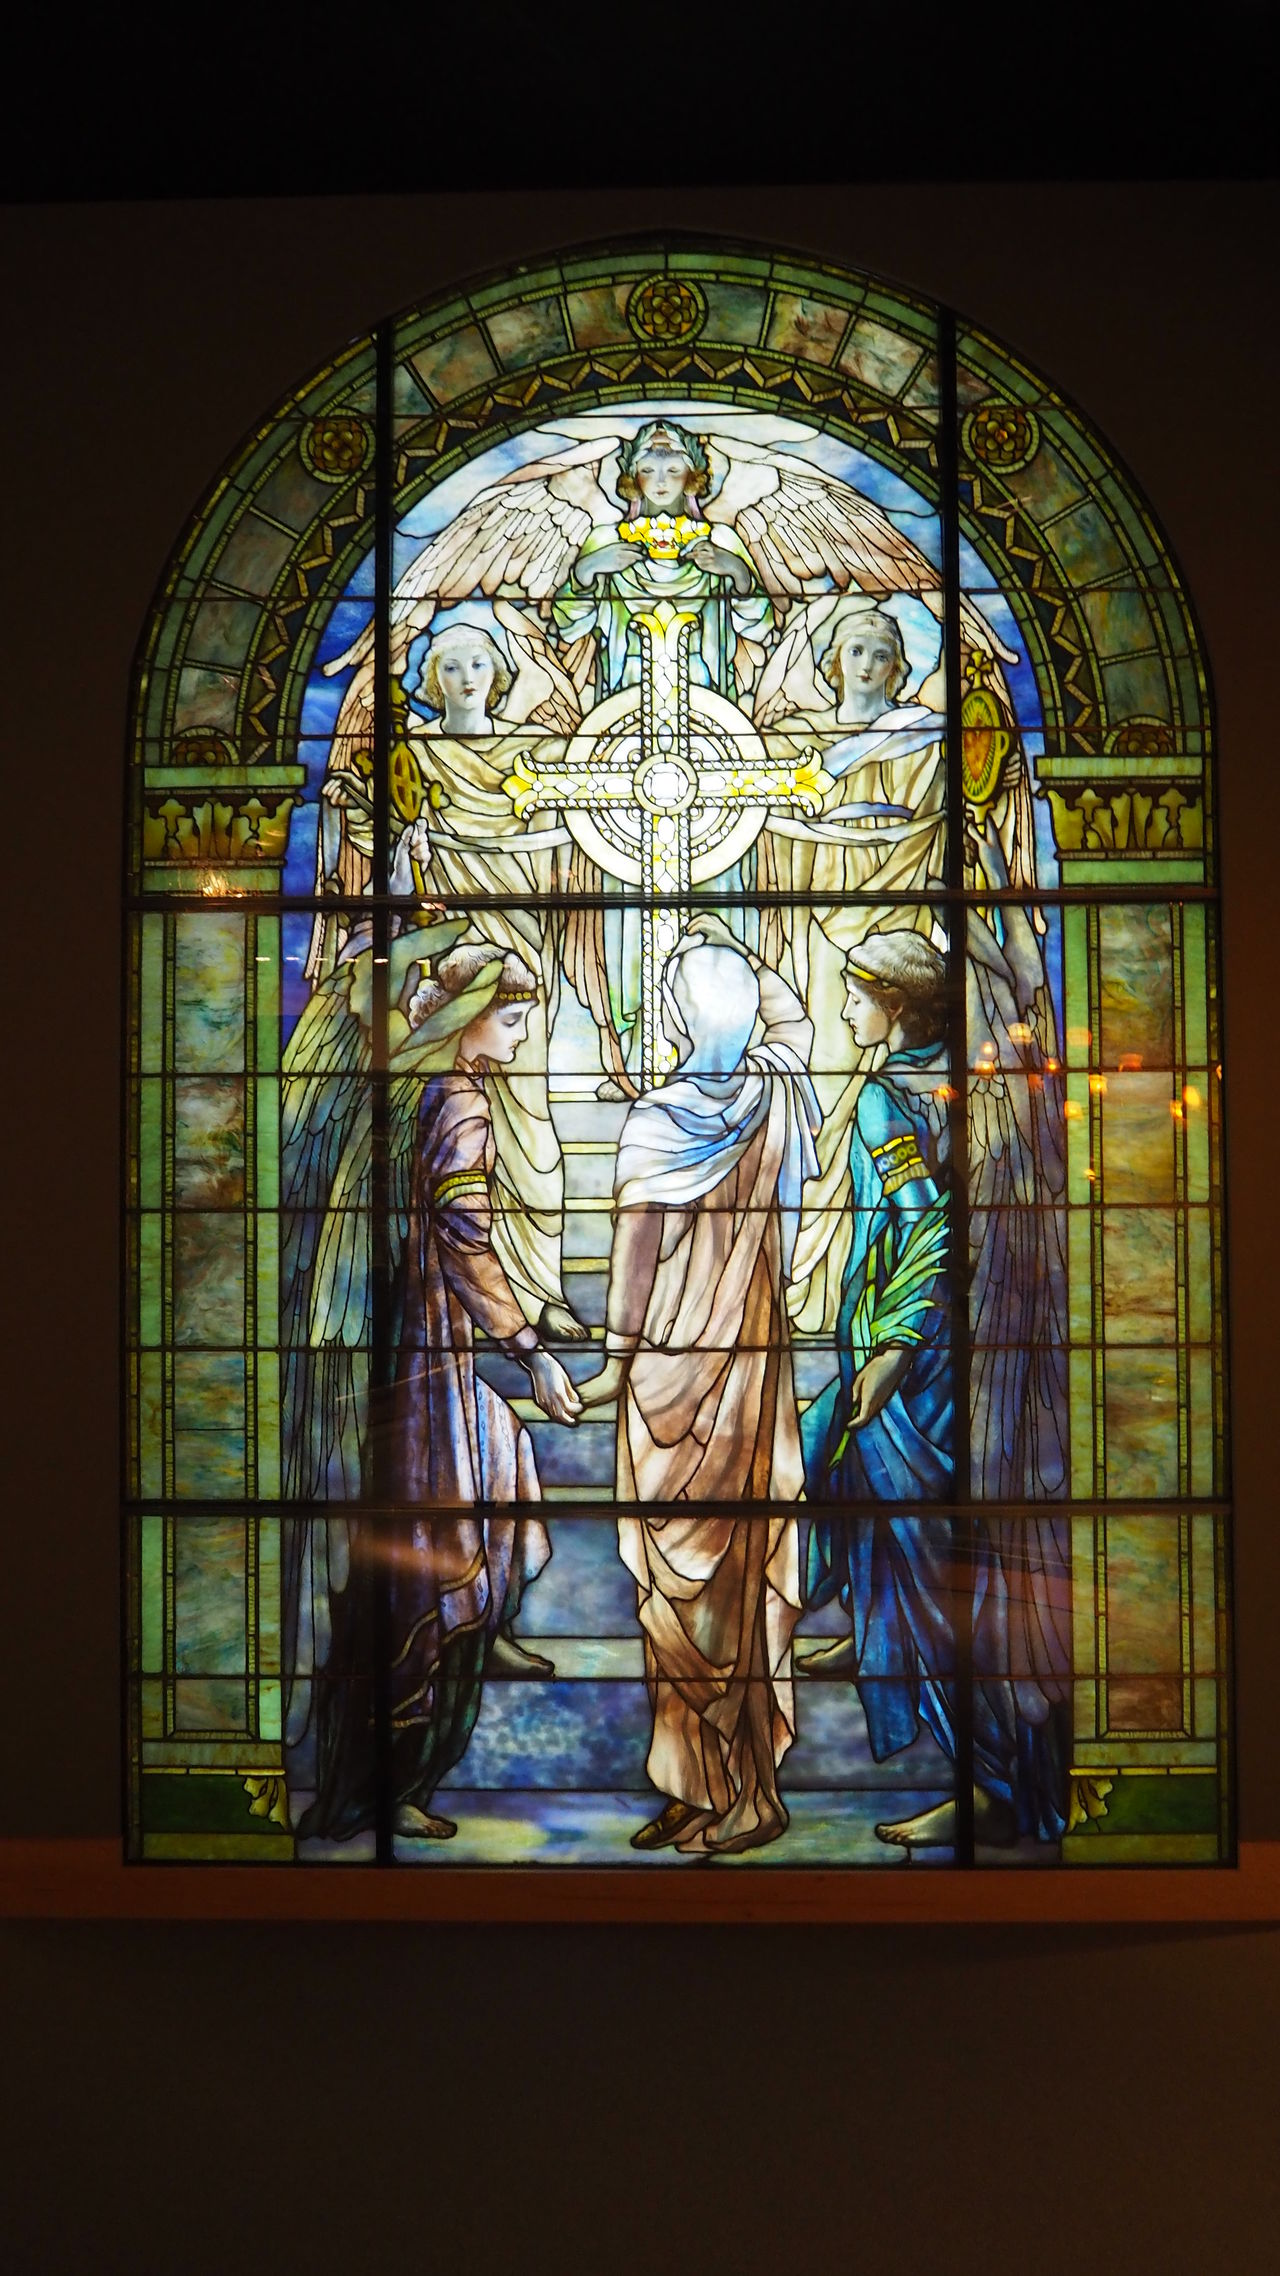 Sculpture Indoors  Leadlight Window Painted Image Religion Stained Glass Stained Glass Window Window